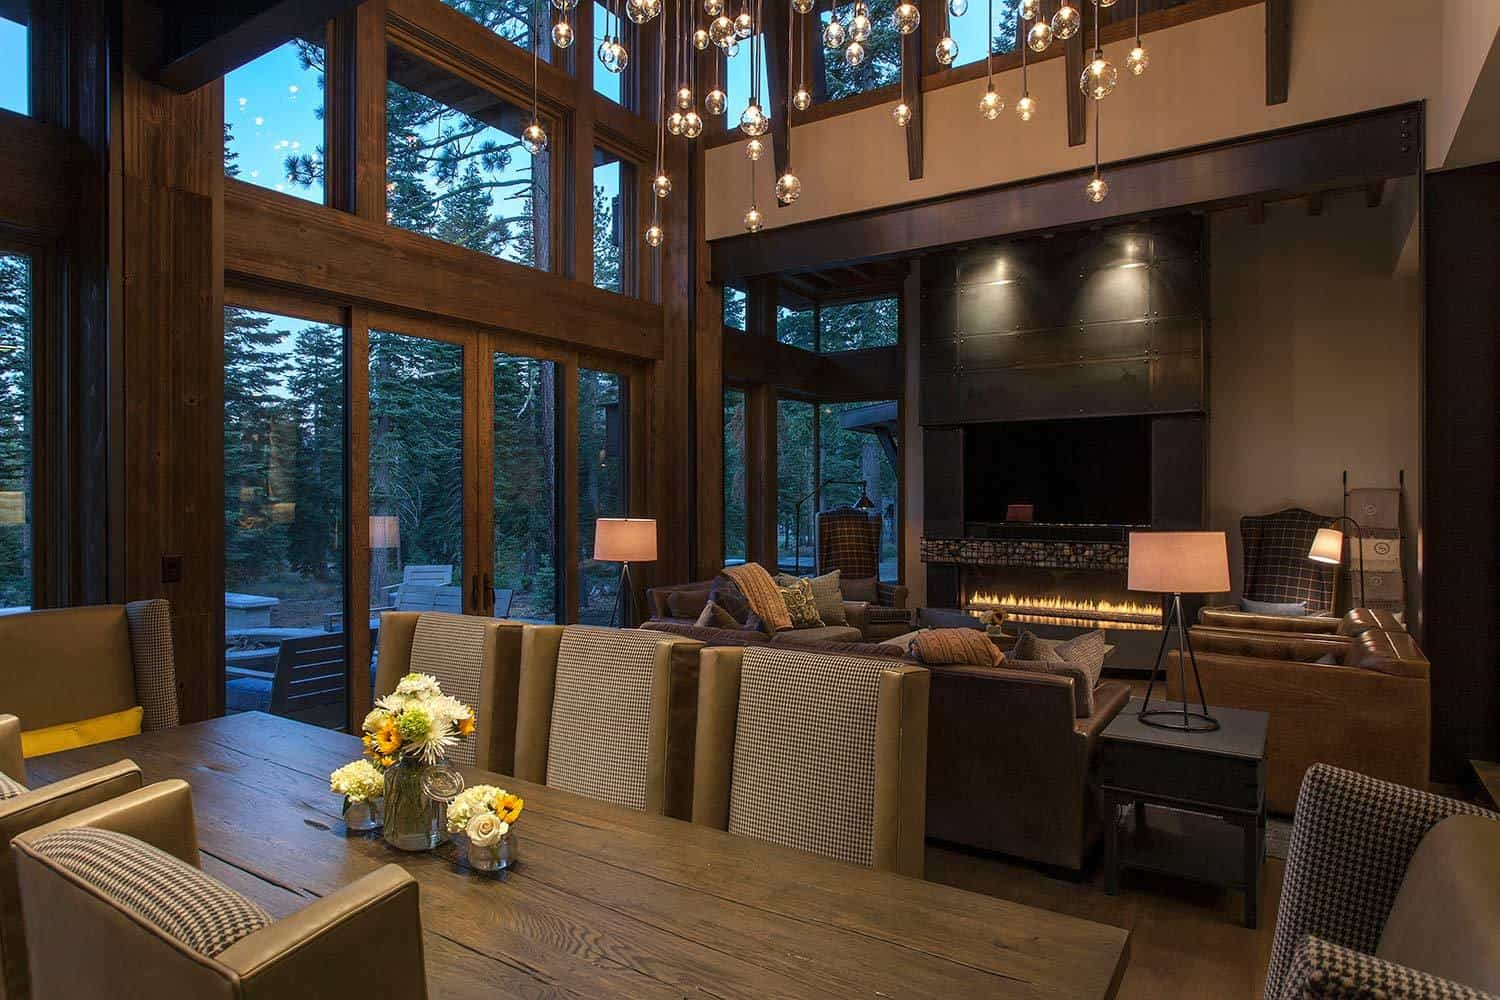 Lake tahoe getaway features contemporary barn aesthetic for Interior designs of the house